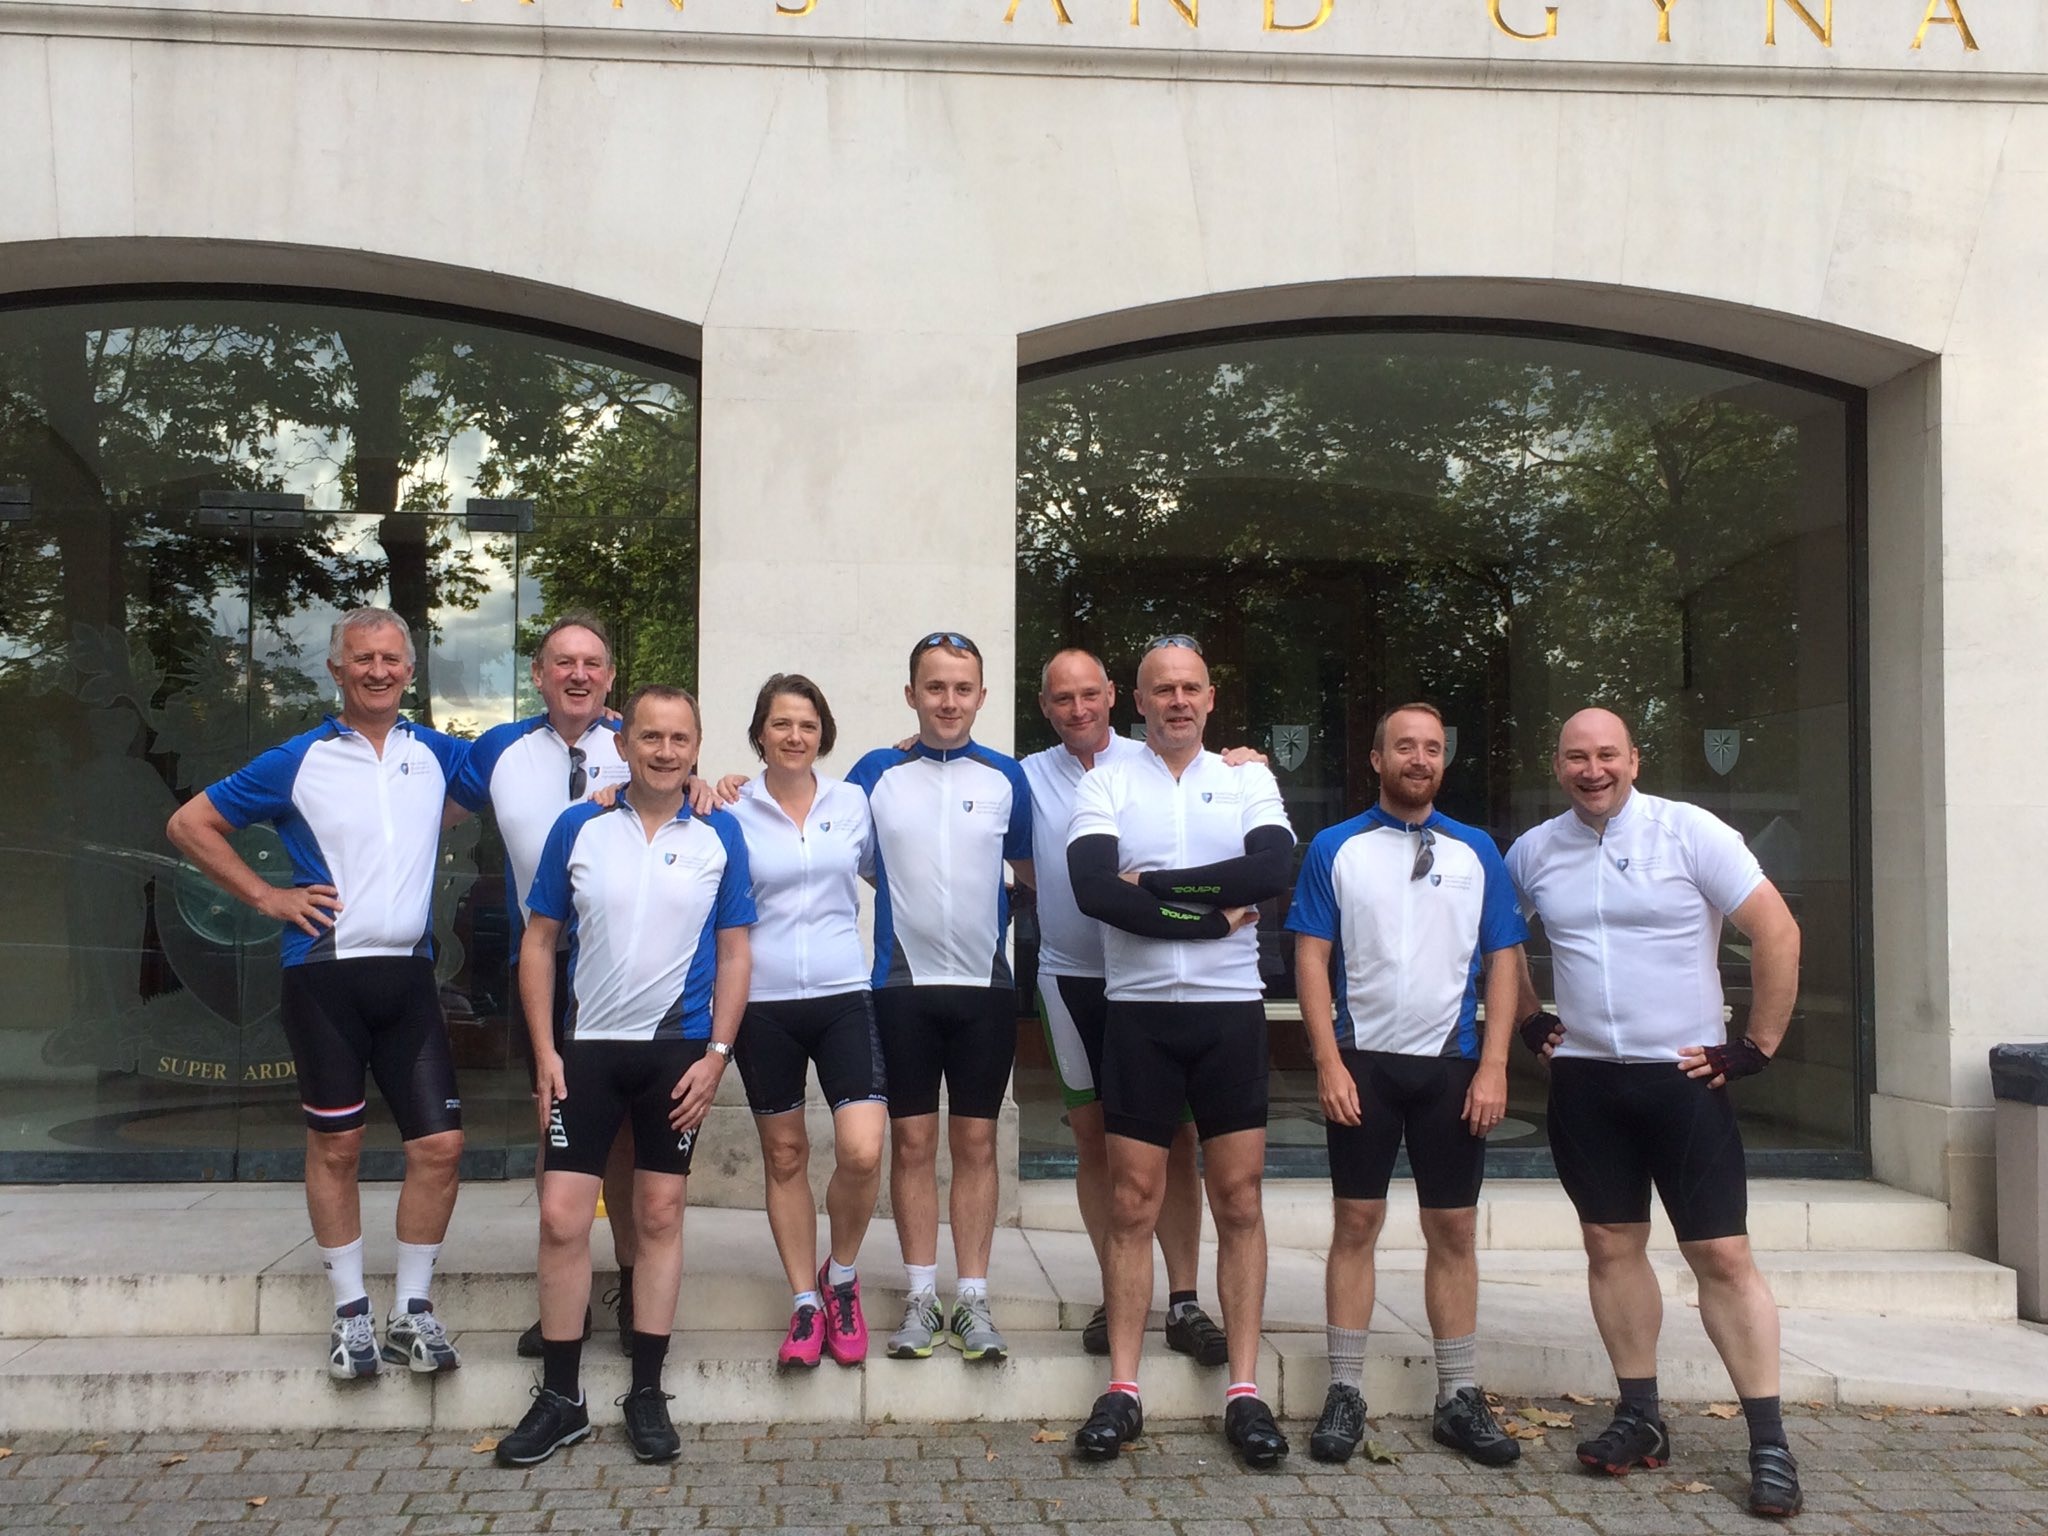 #TeamRCOG looking fresh for their early start this morning, cycling in #RideLondon for #EachBabyCounts https://t.co/YahBSIZAhn